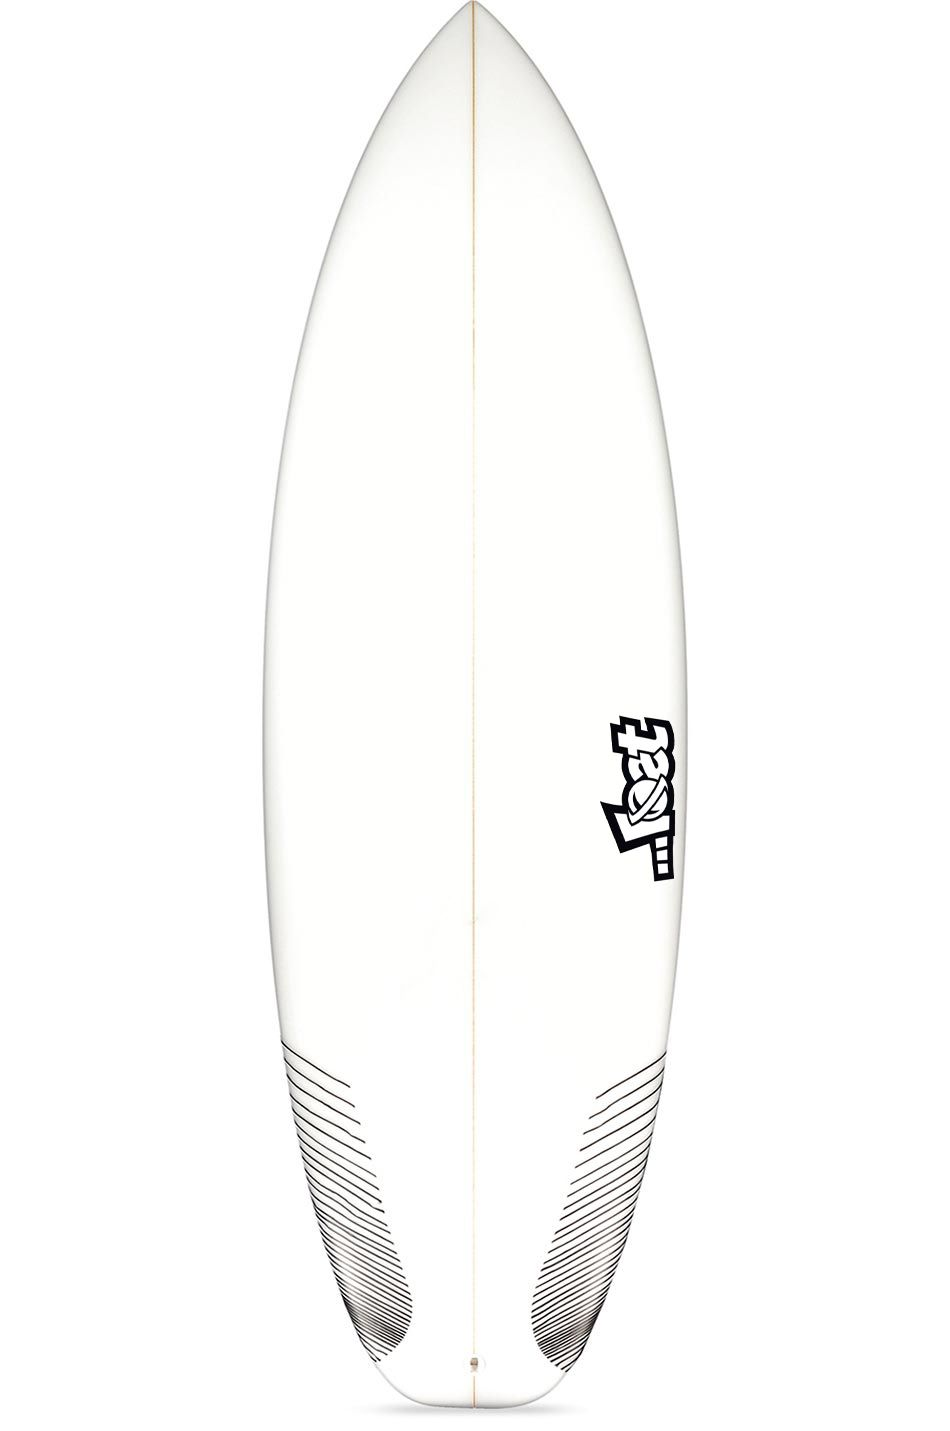 Prancha Surf Lost 5'8 PUDDLE JUMPER HP Squash Tail - White FCS II Multisystem 5ft8